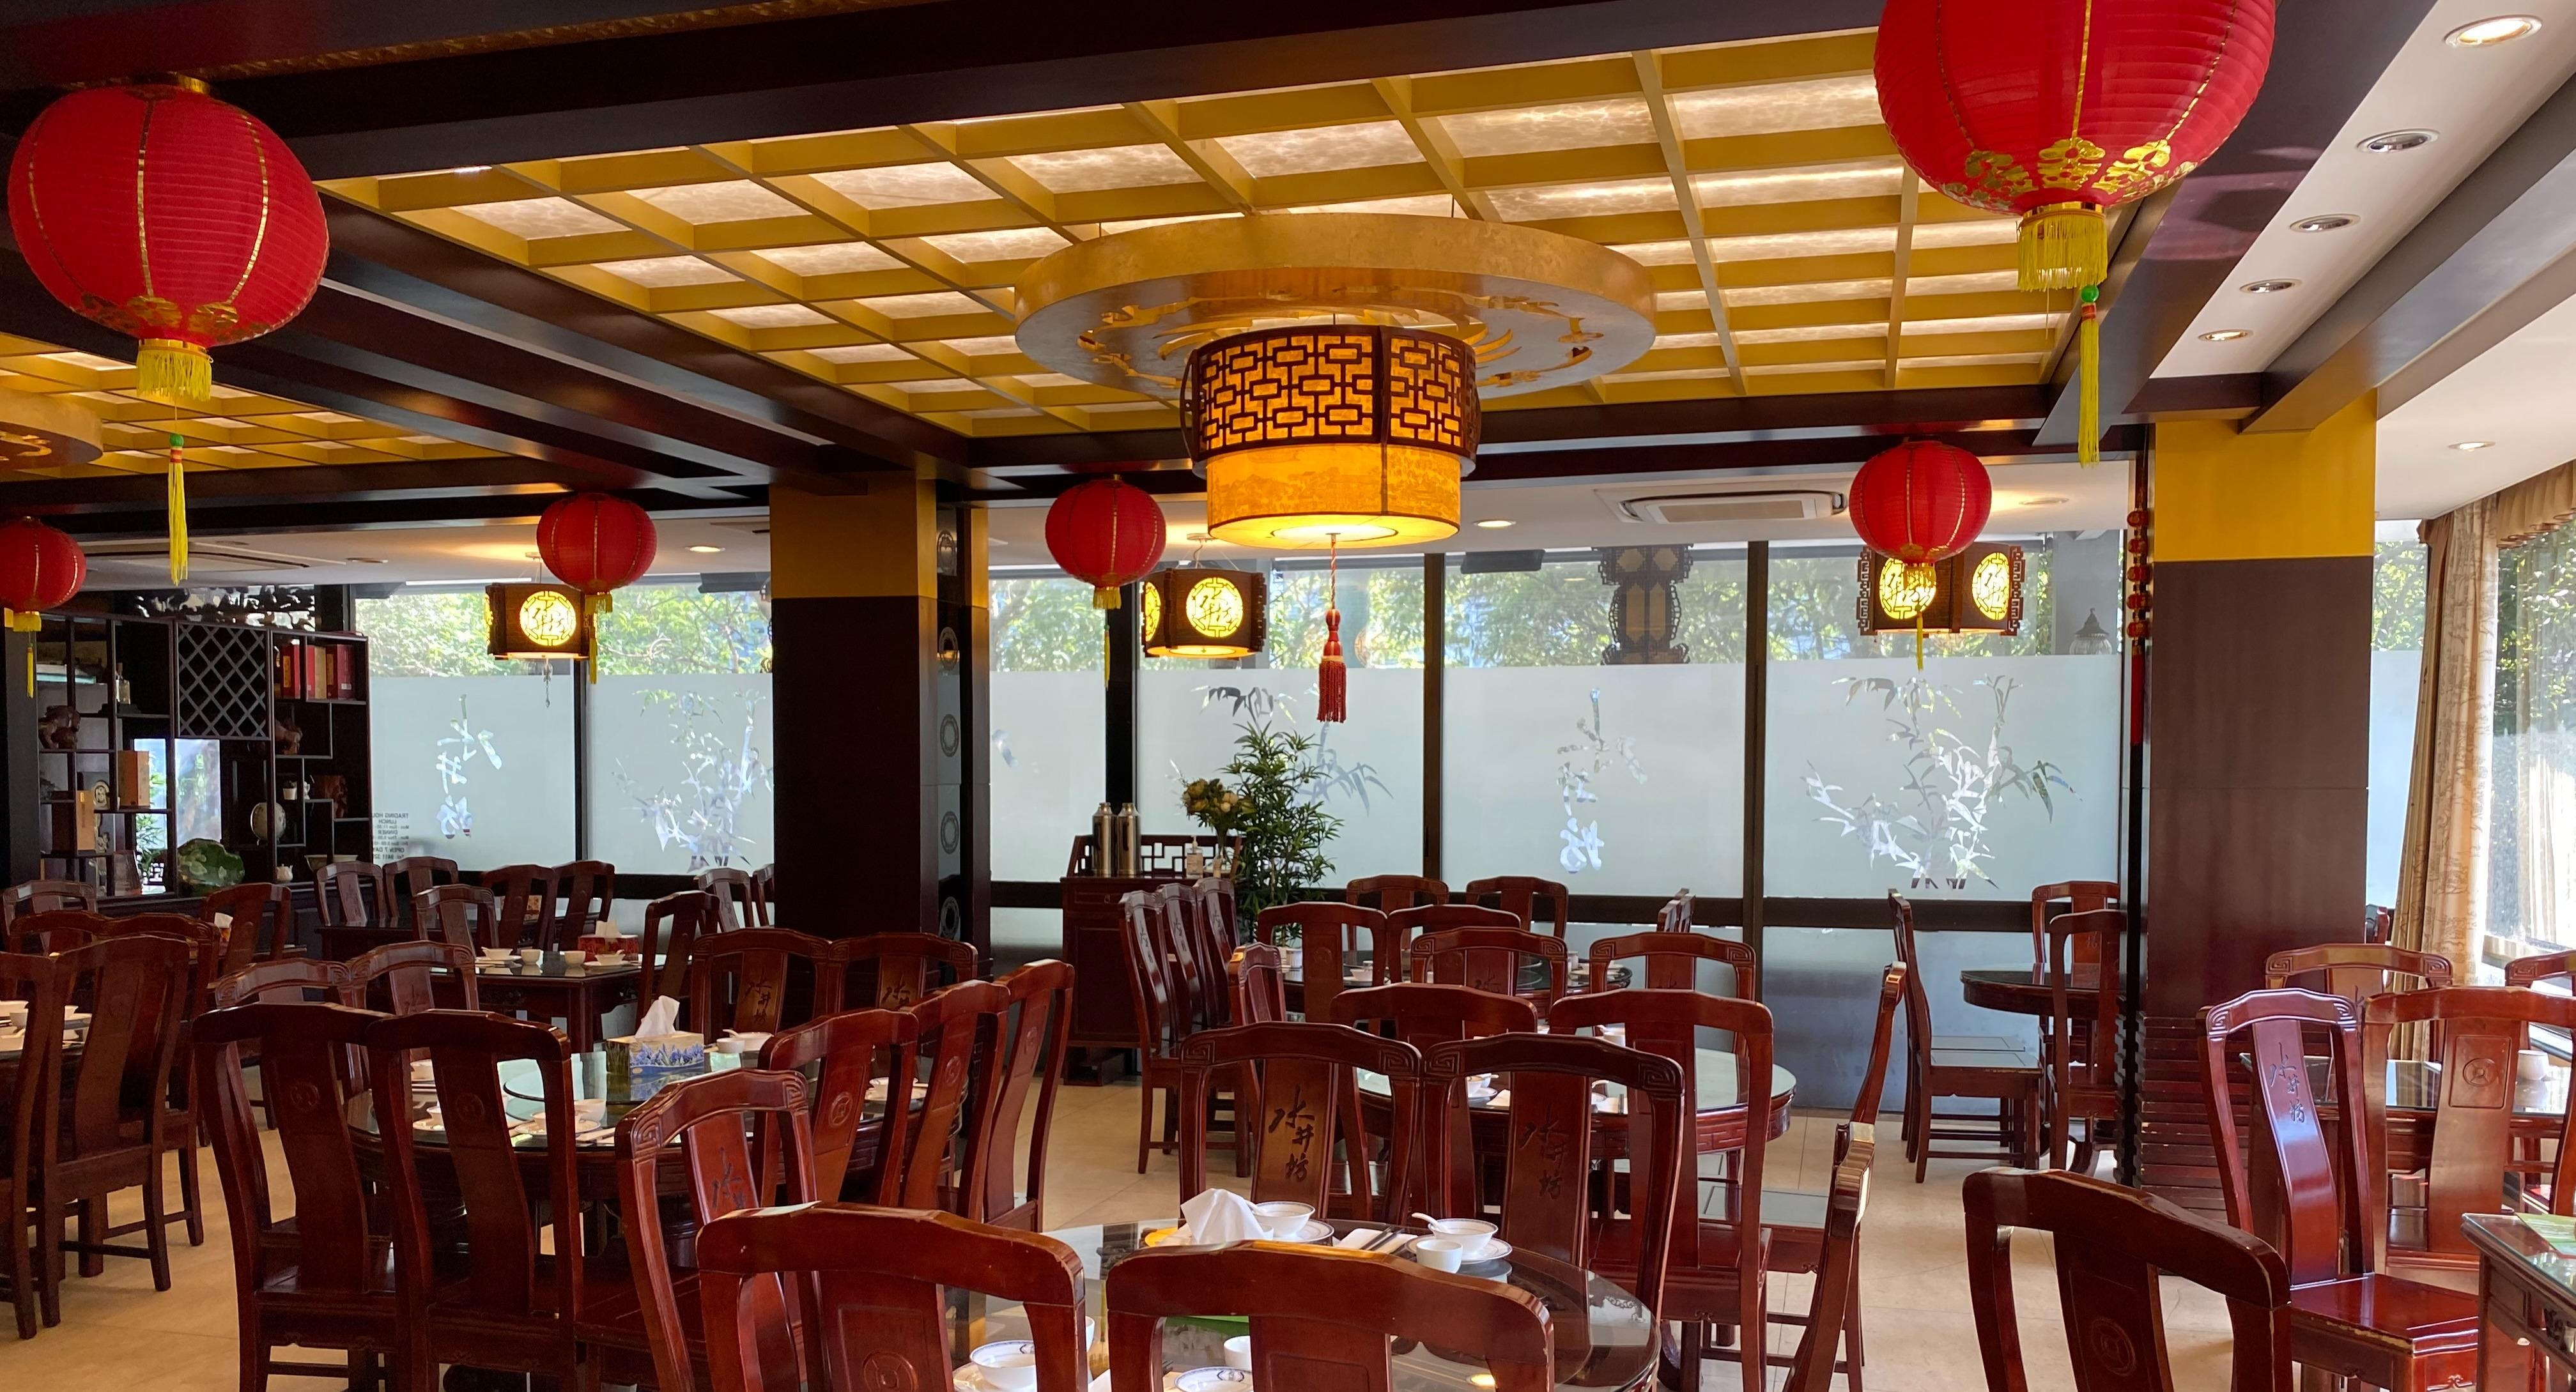 Photo of restaurant Red Chilli Sichuan Chatswood in Chatswood, Sydney